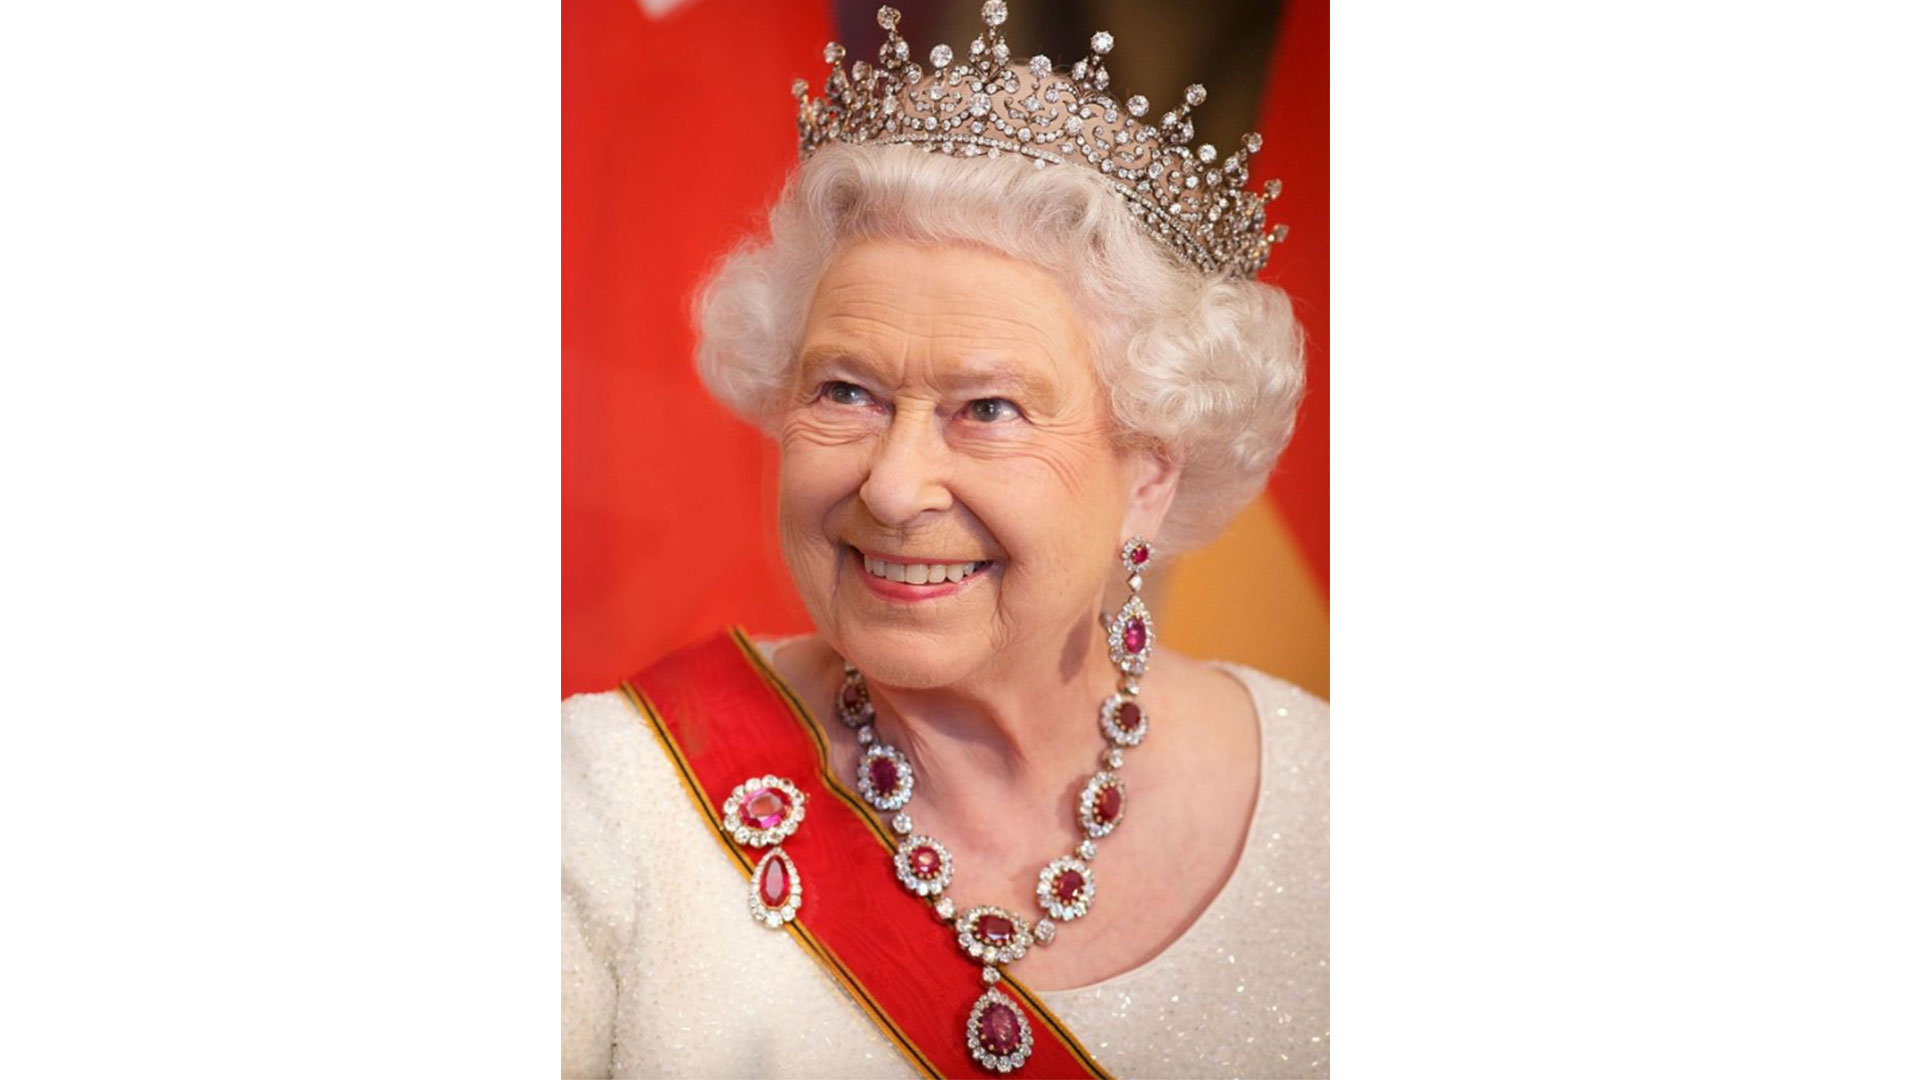 Queen Victoria's Crown Ruby Earrings and Necklace